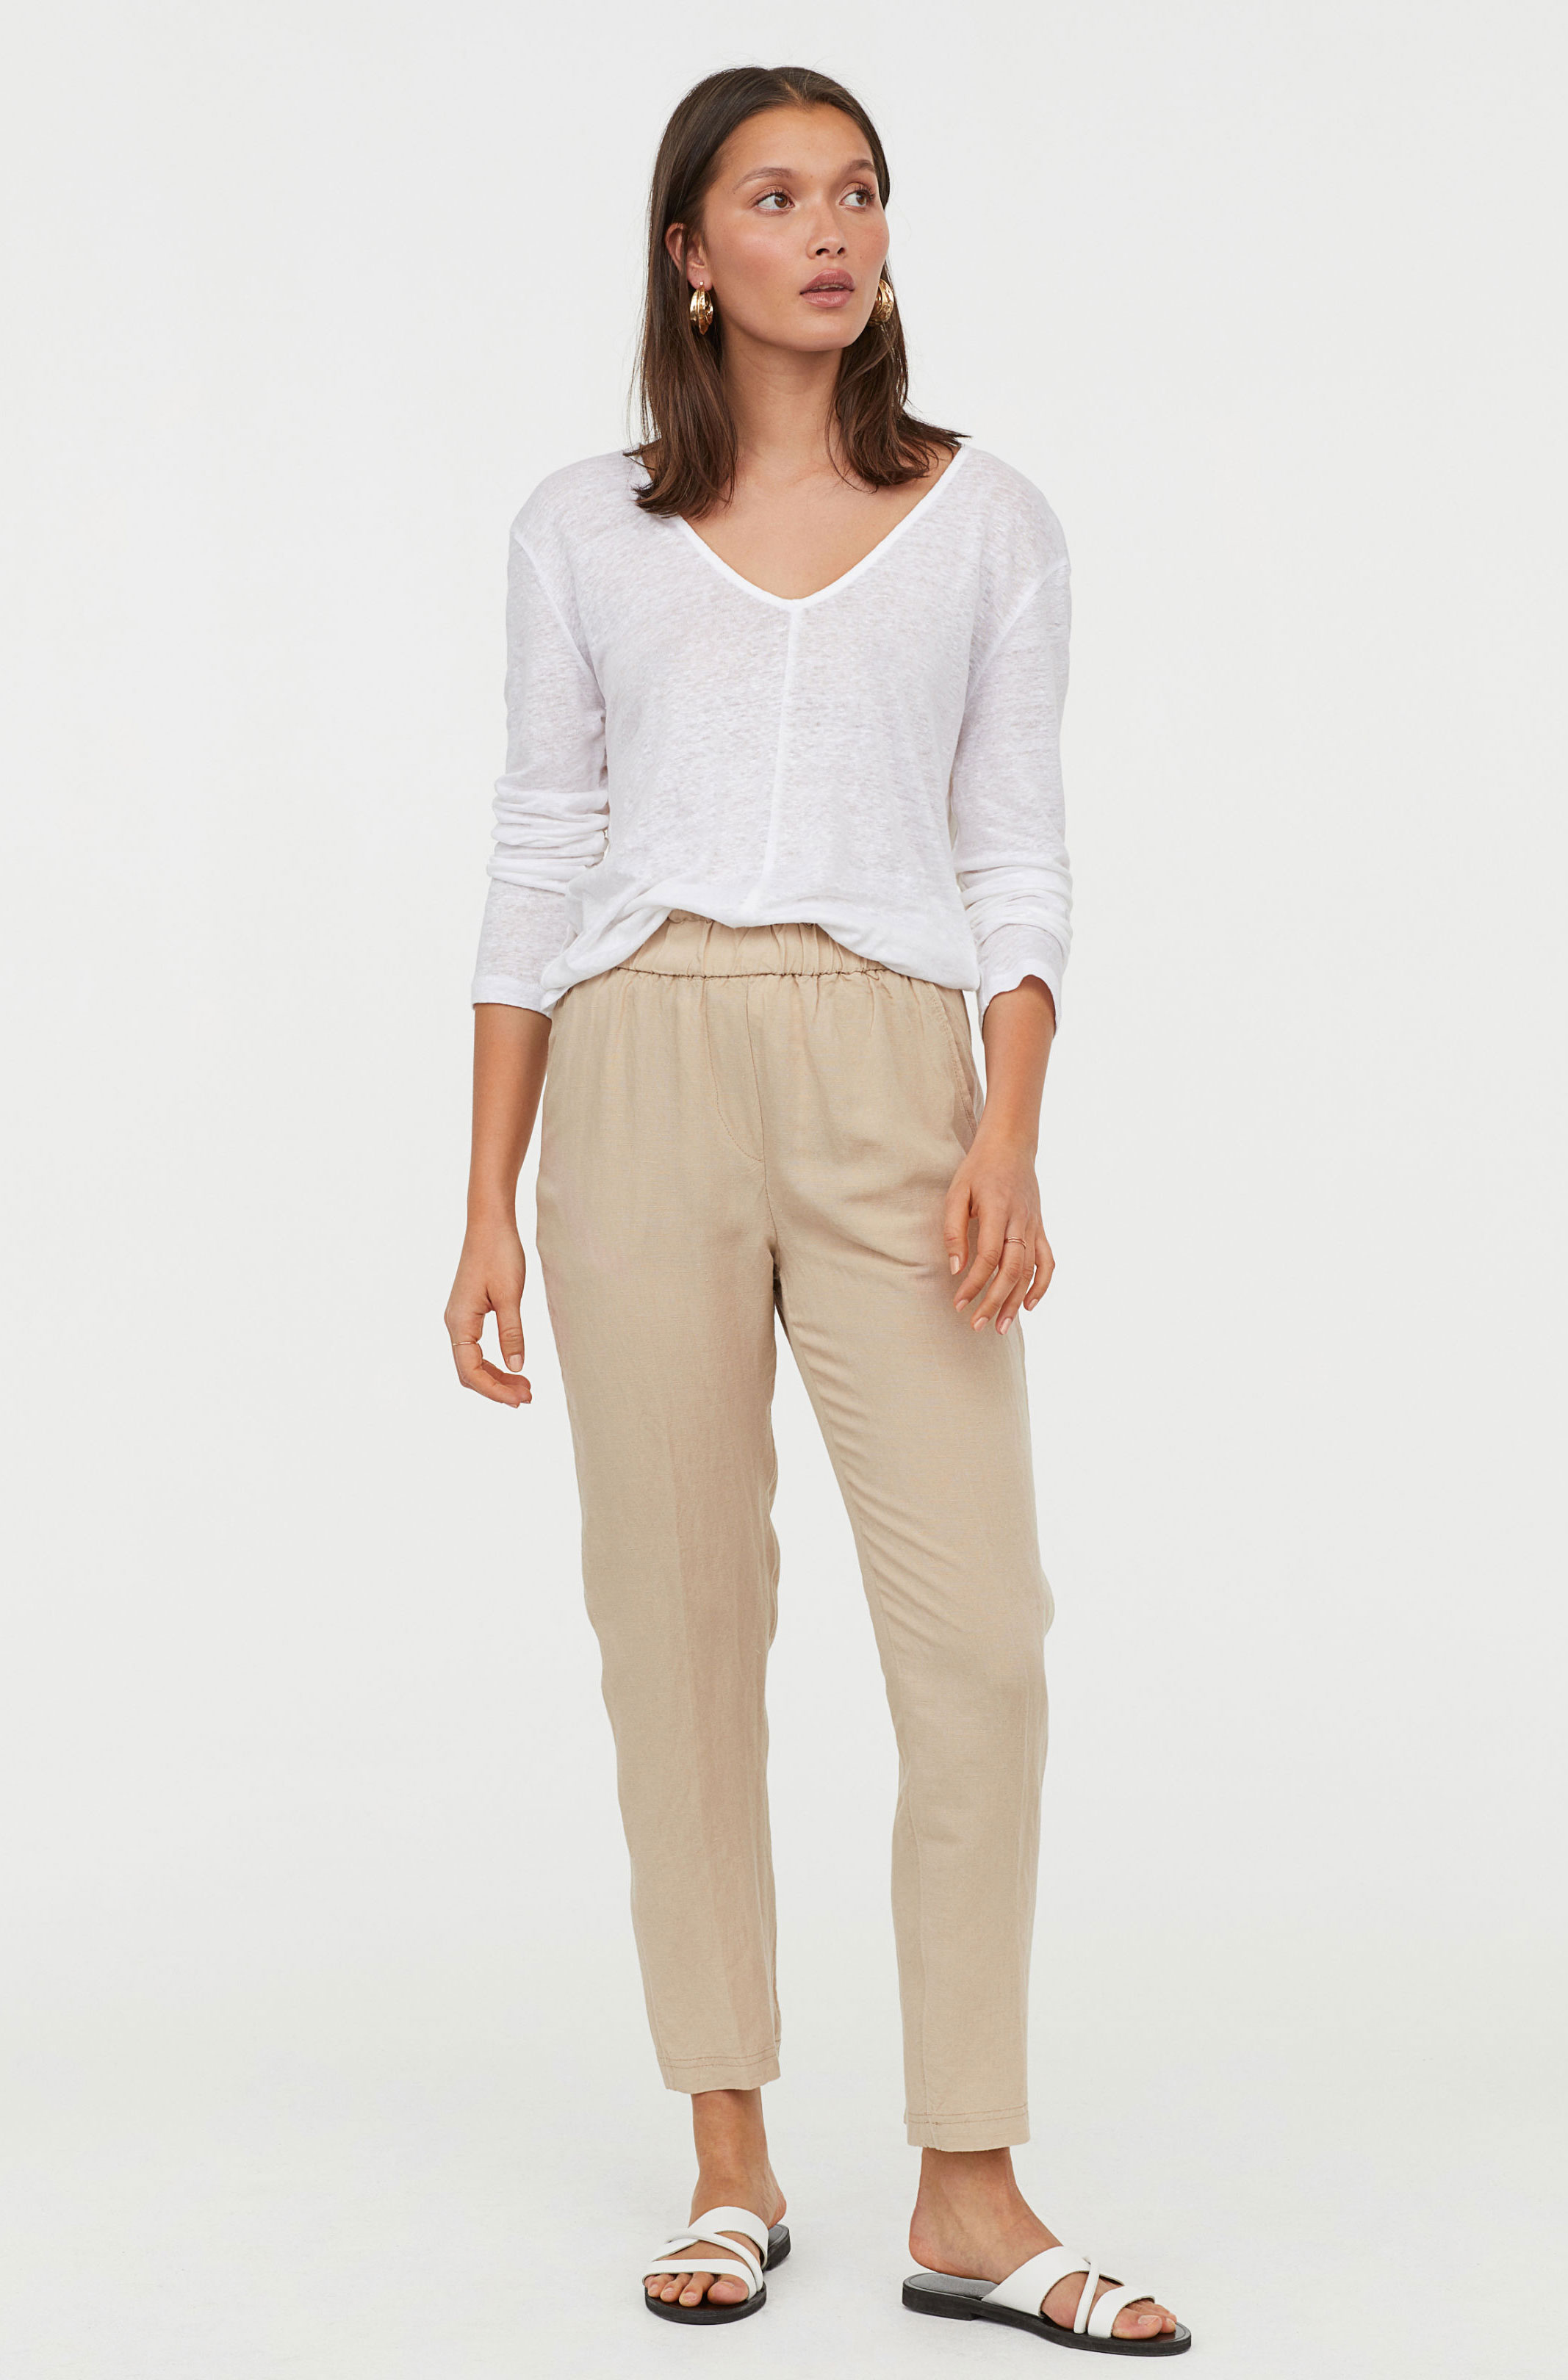 H&M Neutral Pants  $24.99